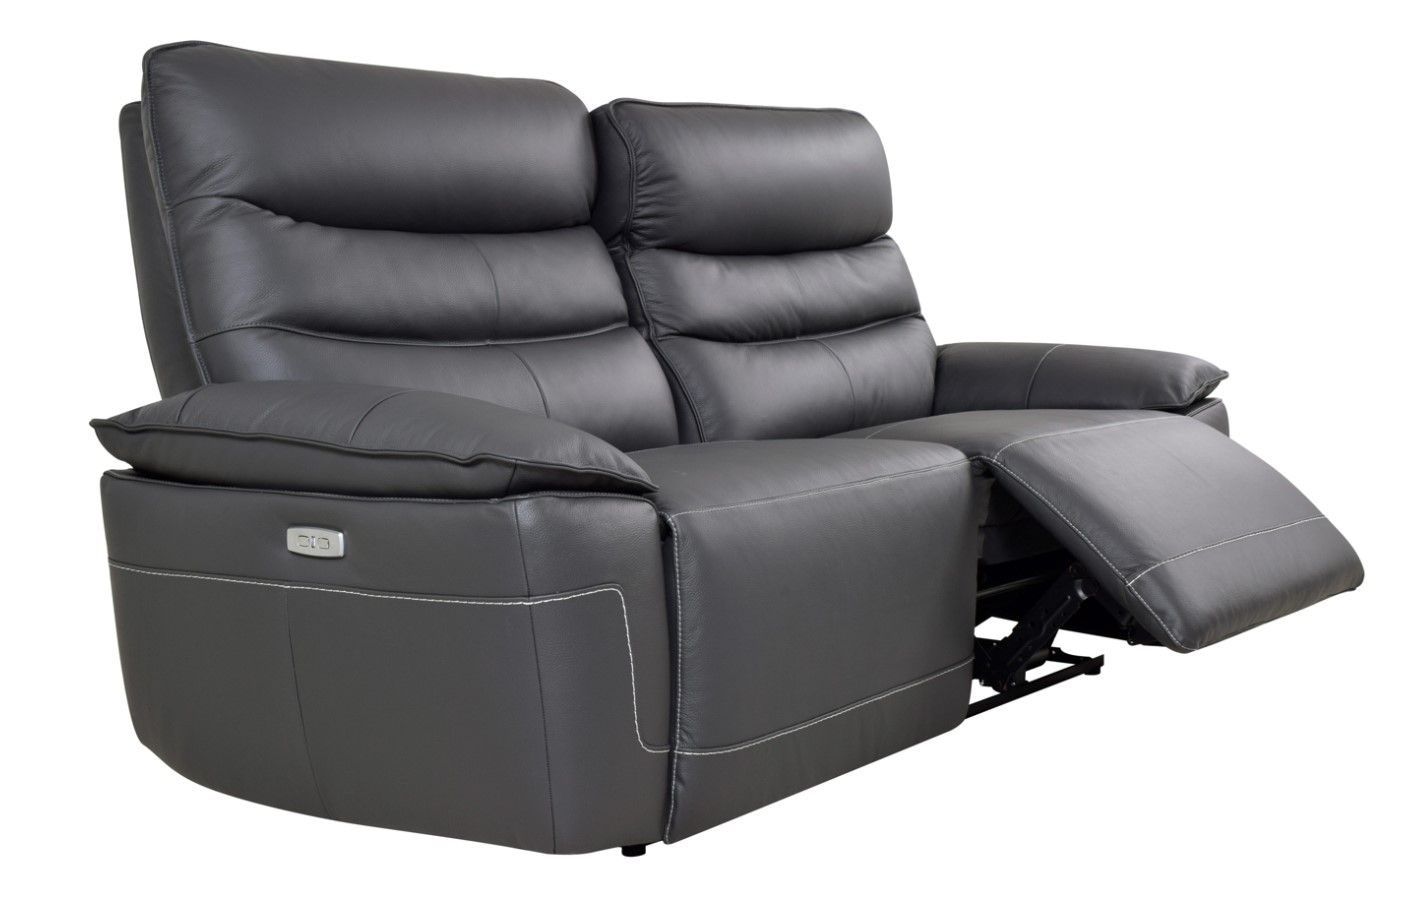 Canape 3 Places 2 Rlx Electri Evogg Cuir Pas Cher Canape But Iziva Com Canape Relax Canapes Tendance Canape Pas Cher